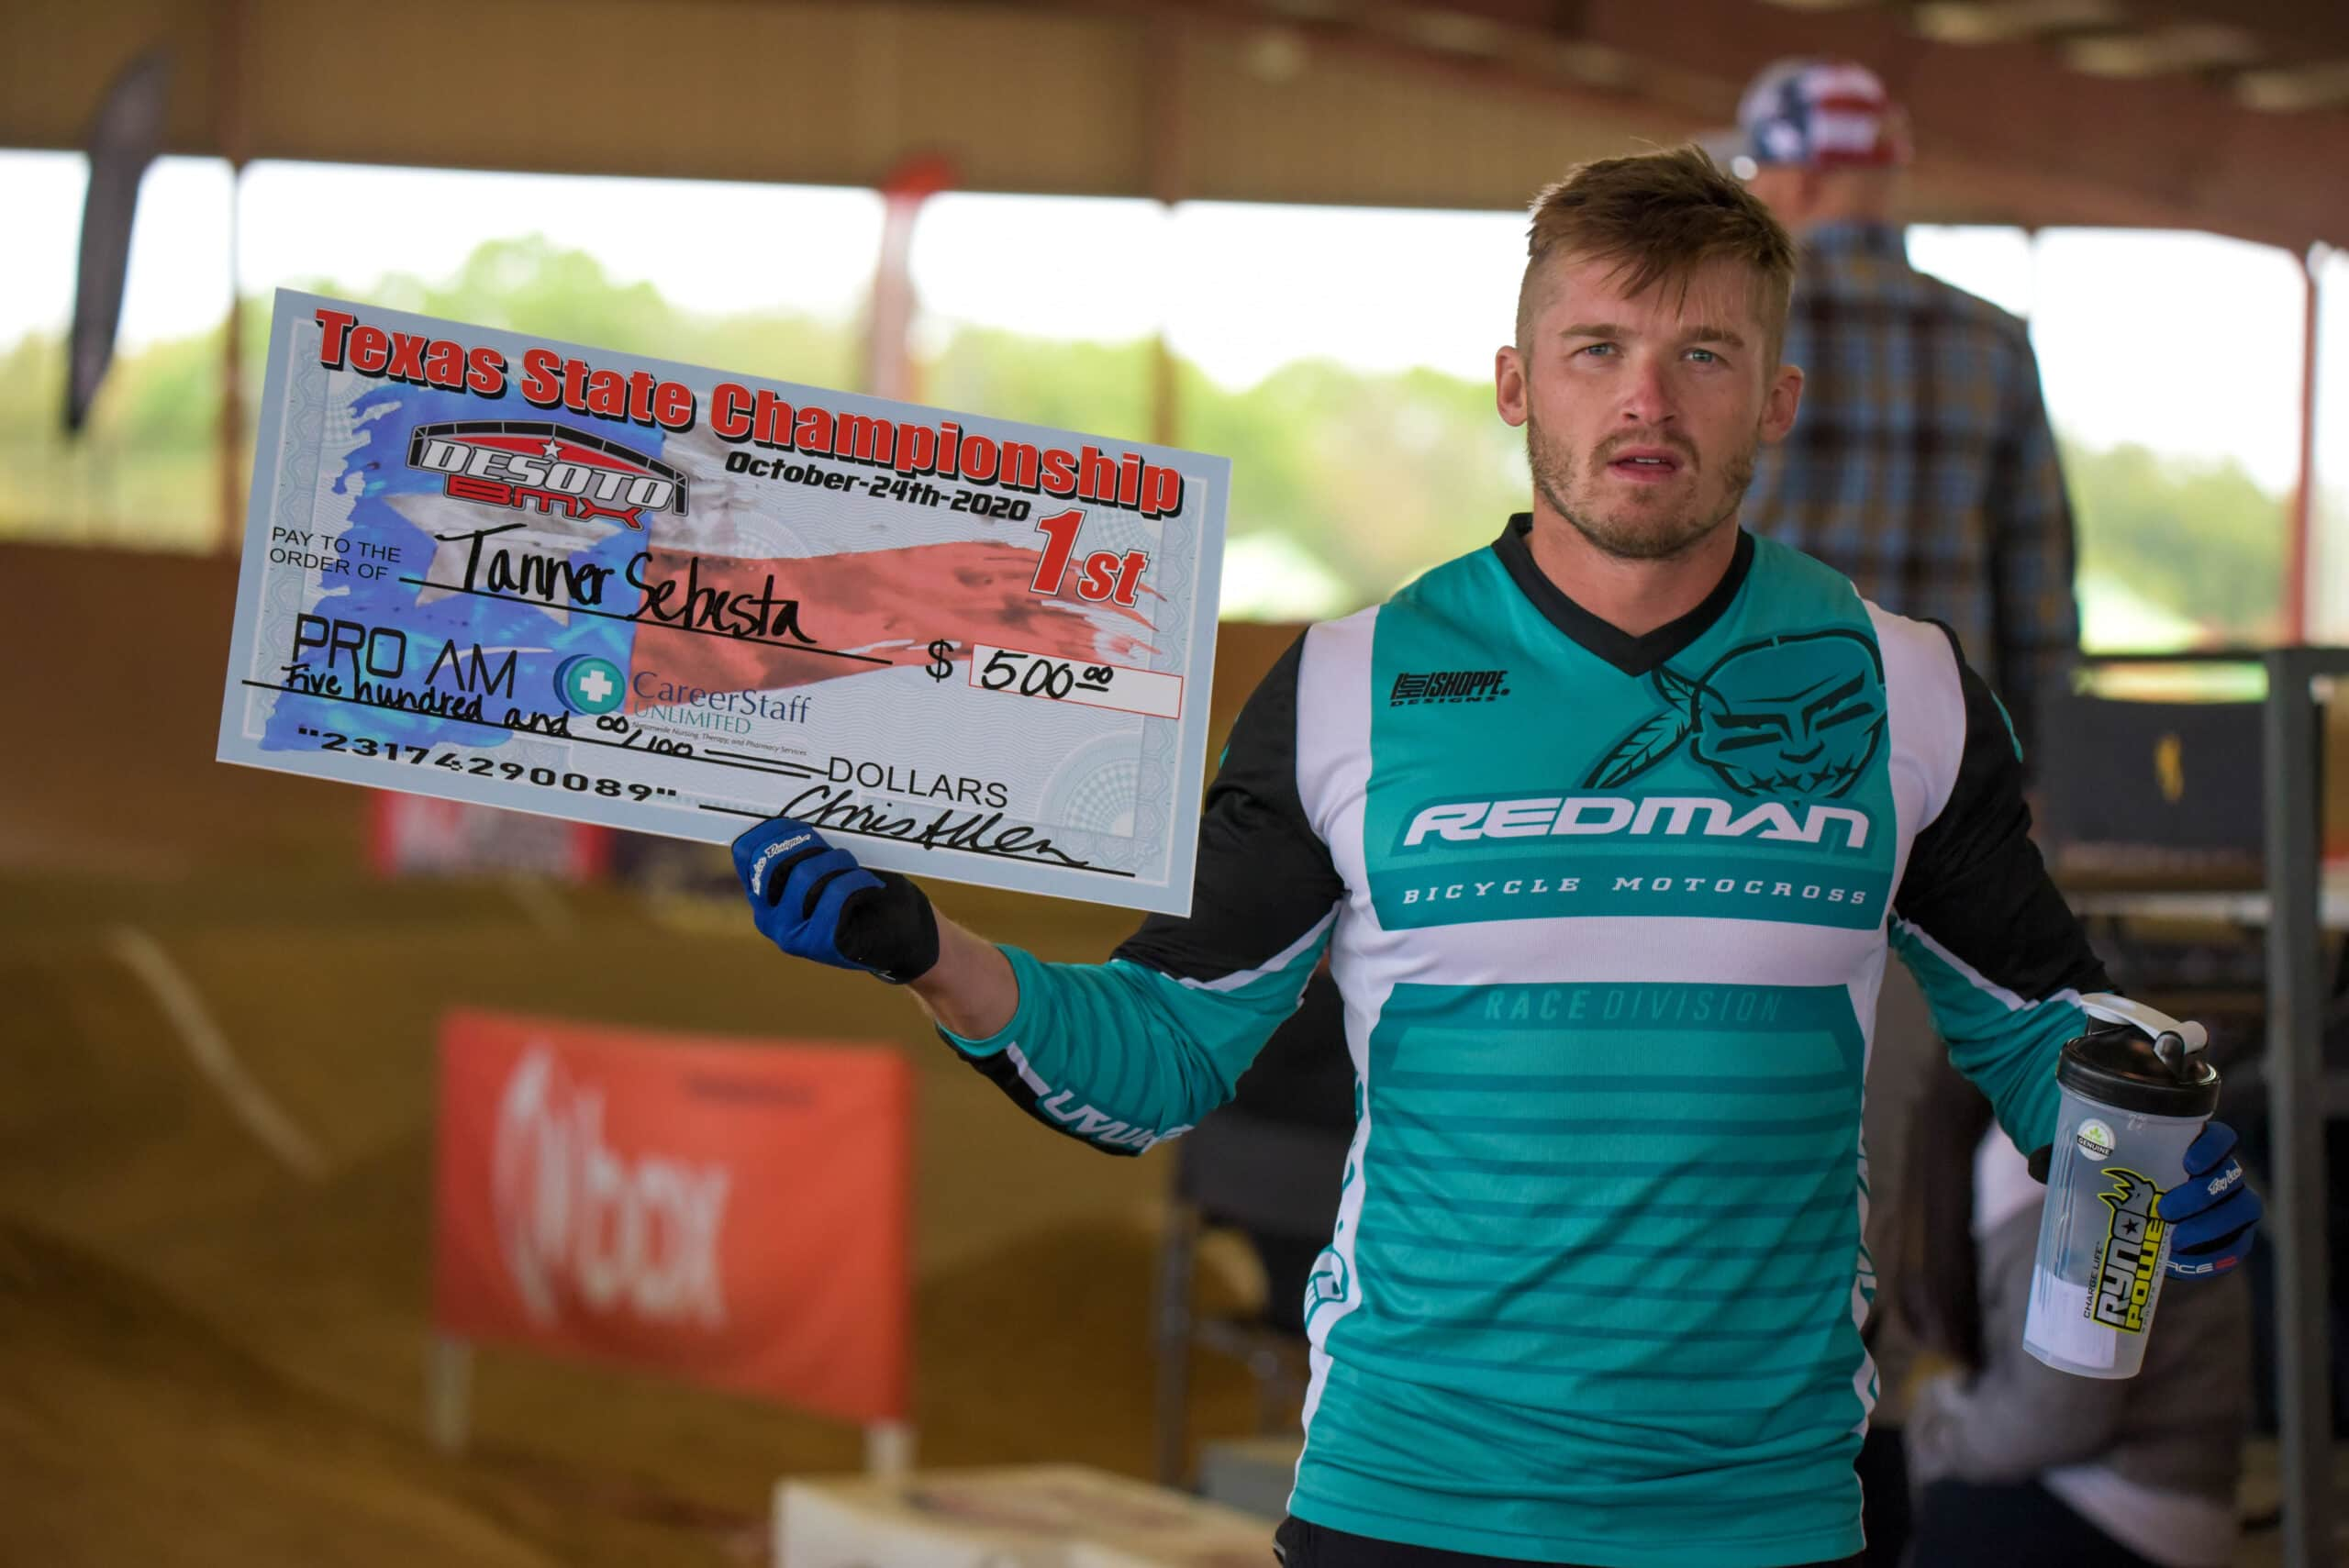 Man holds check